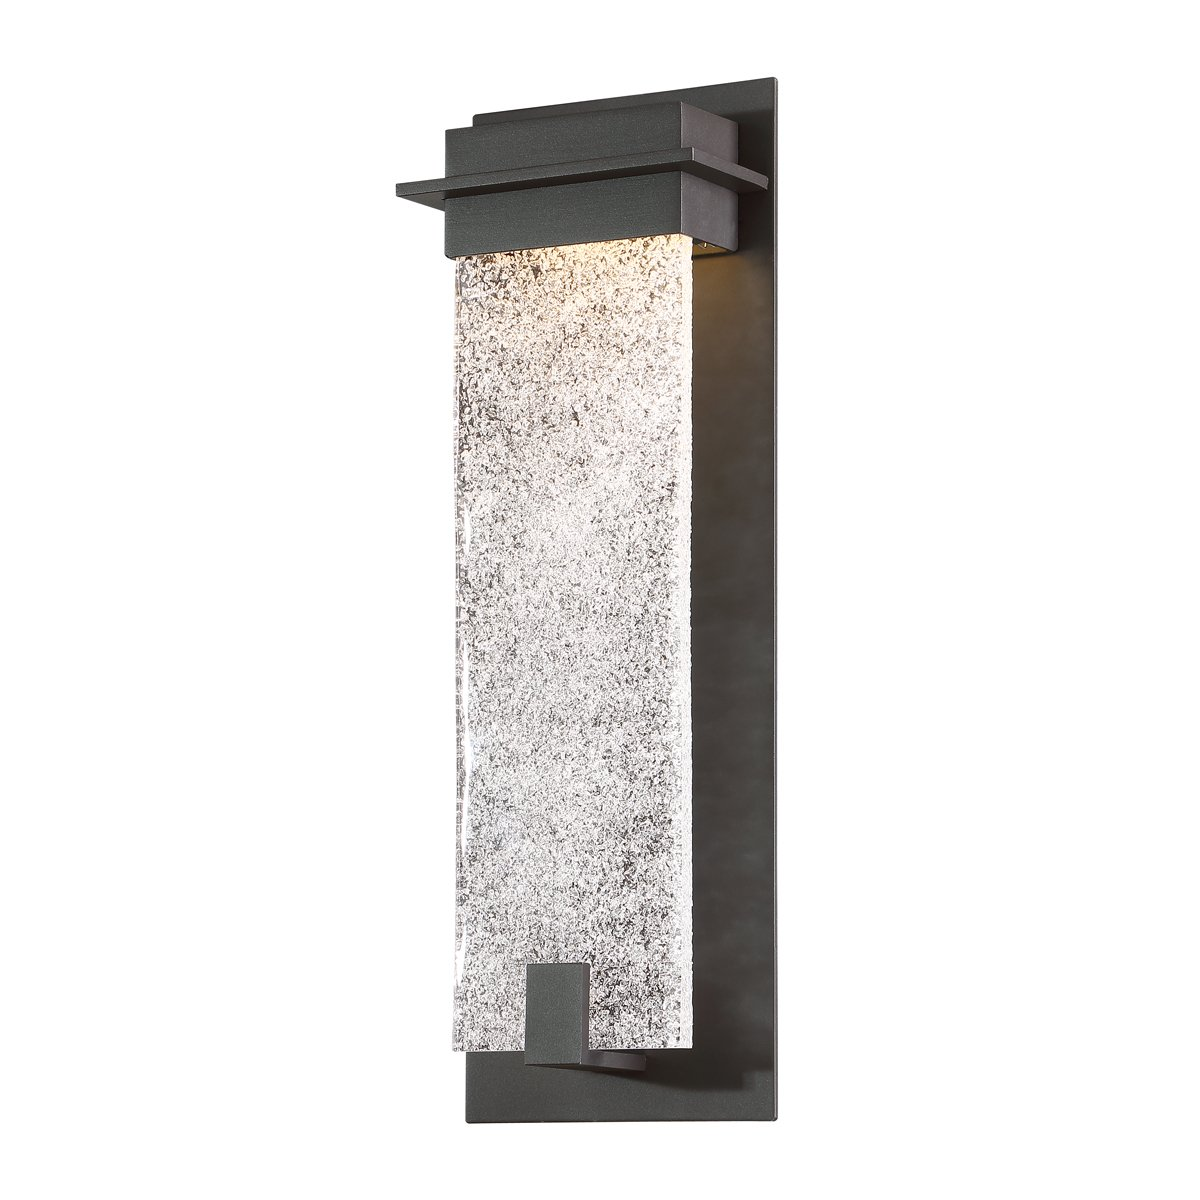 WAC Lighting WS-W41716-BZ Spa 16'' LED Outdoor Wall Light, 16 Inches, Bronze